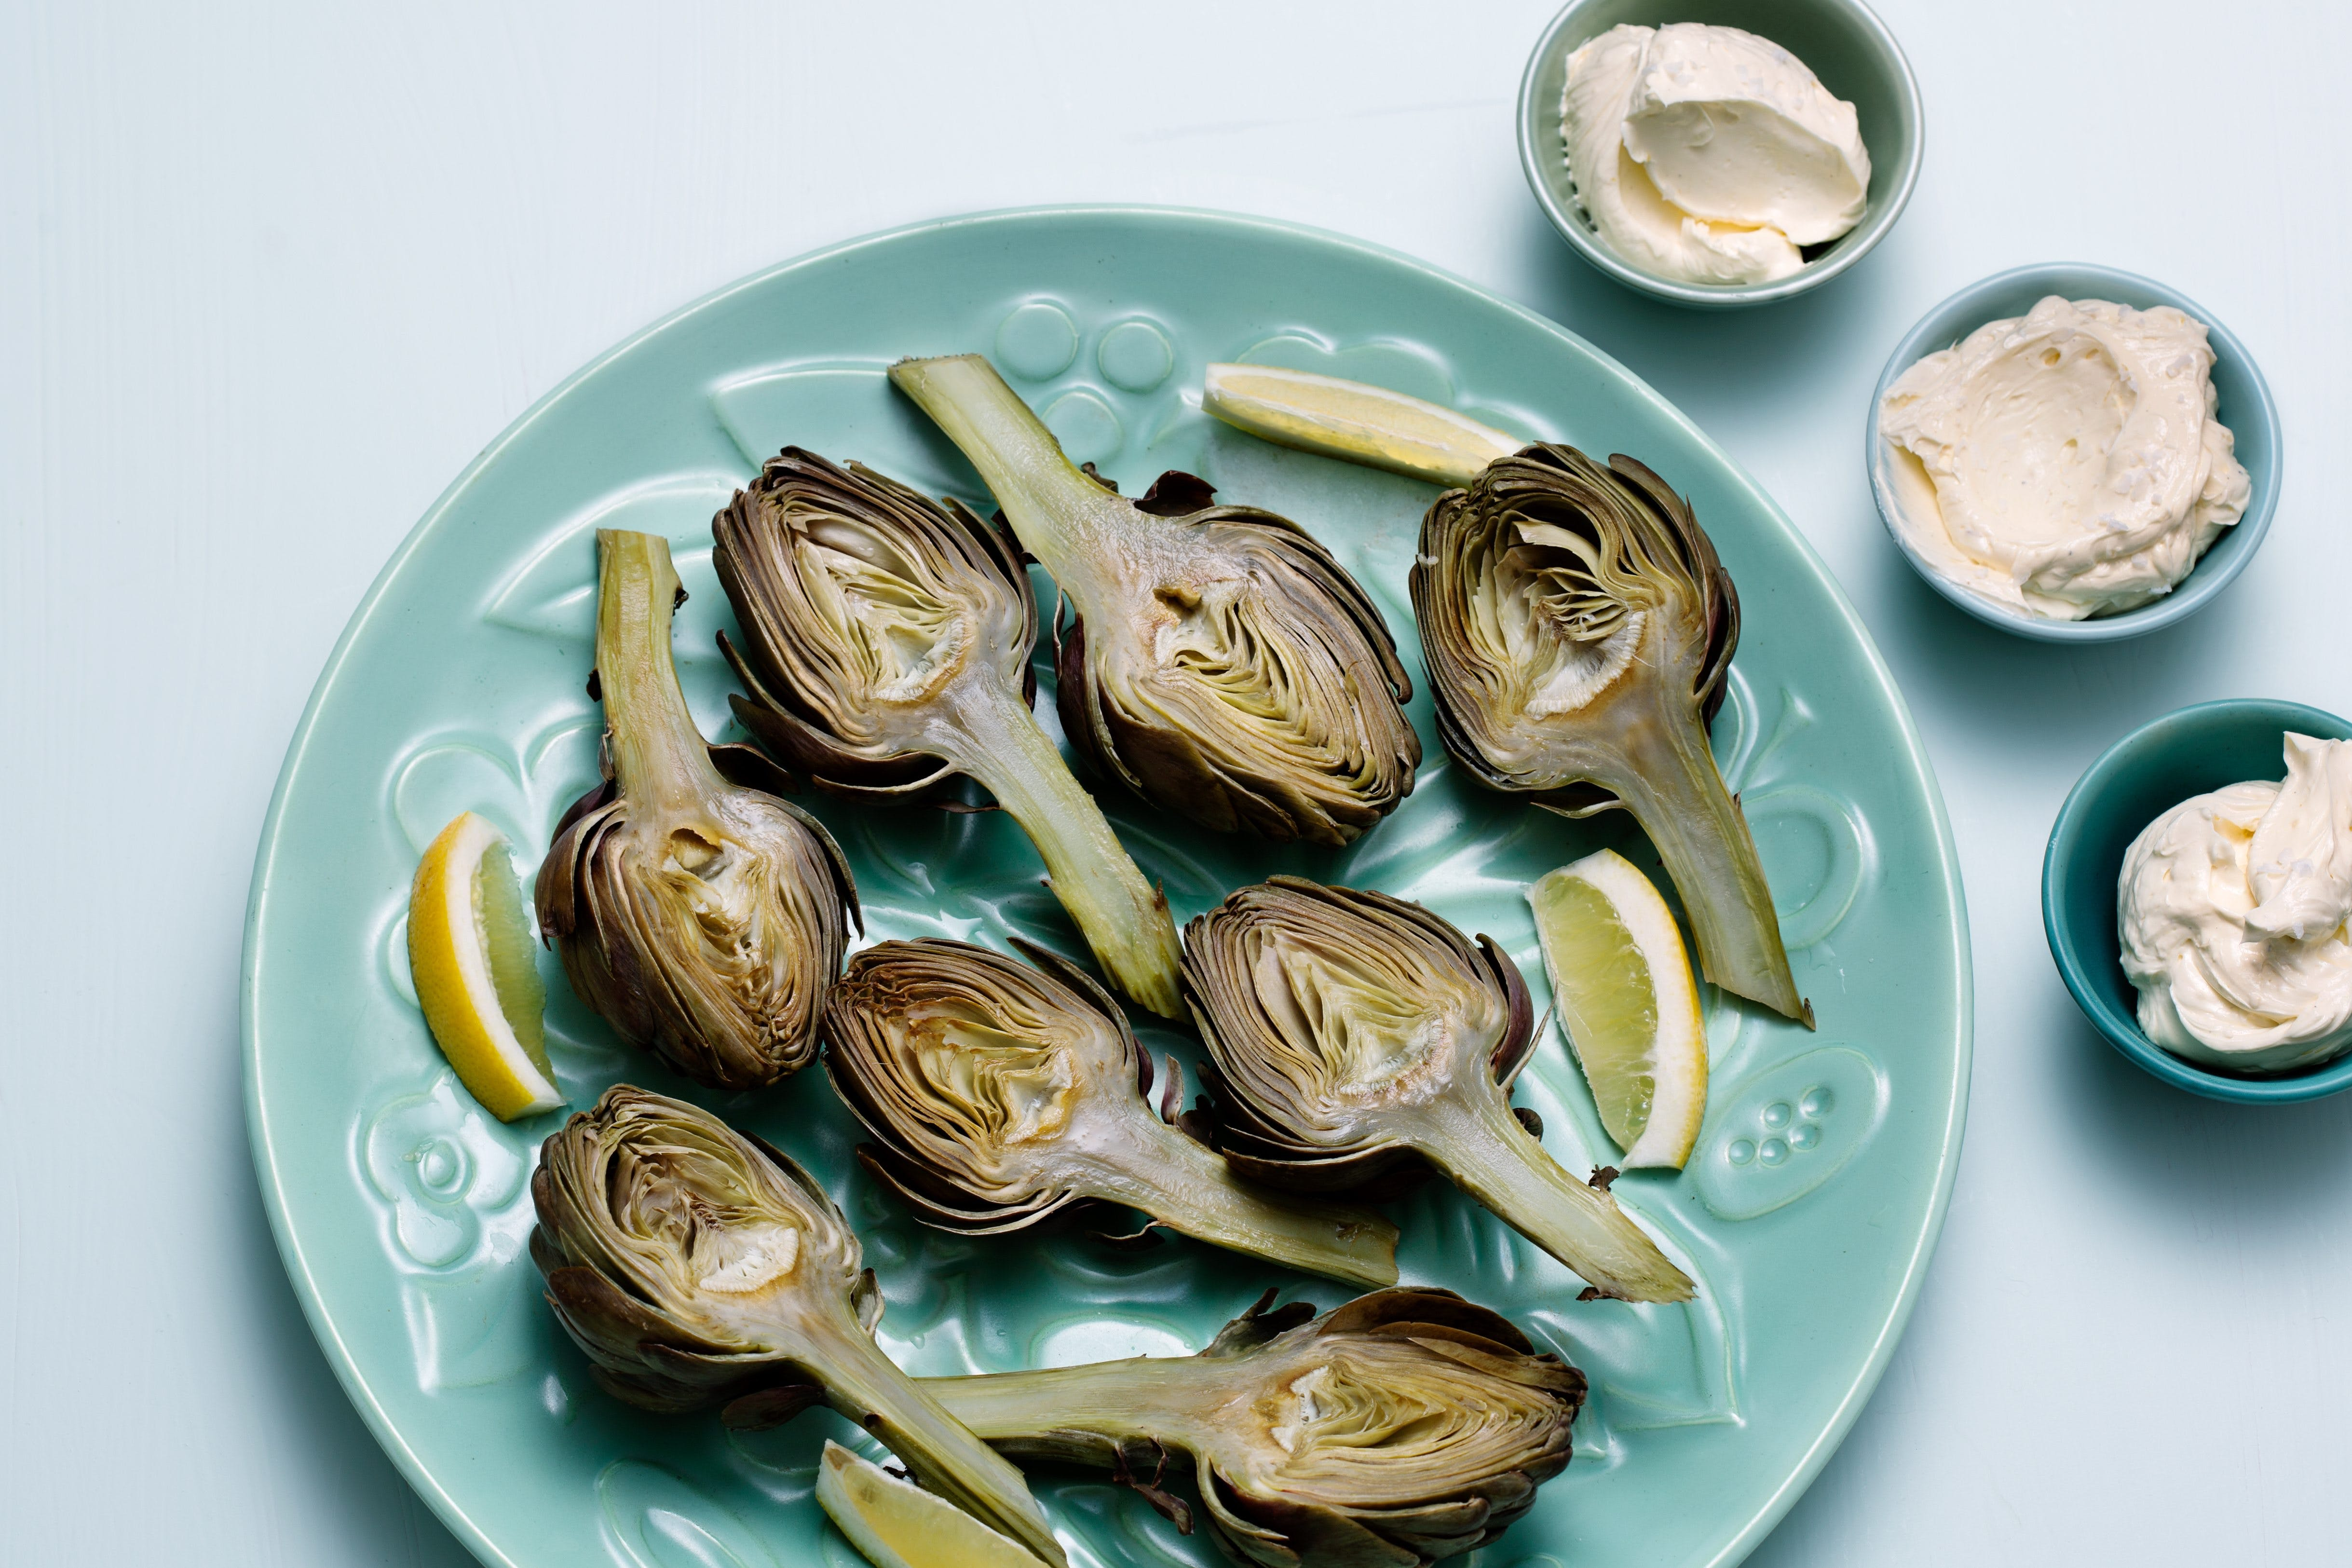 Artichokes with Whipped Lemon Butter